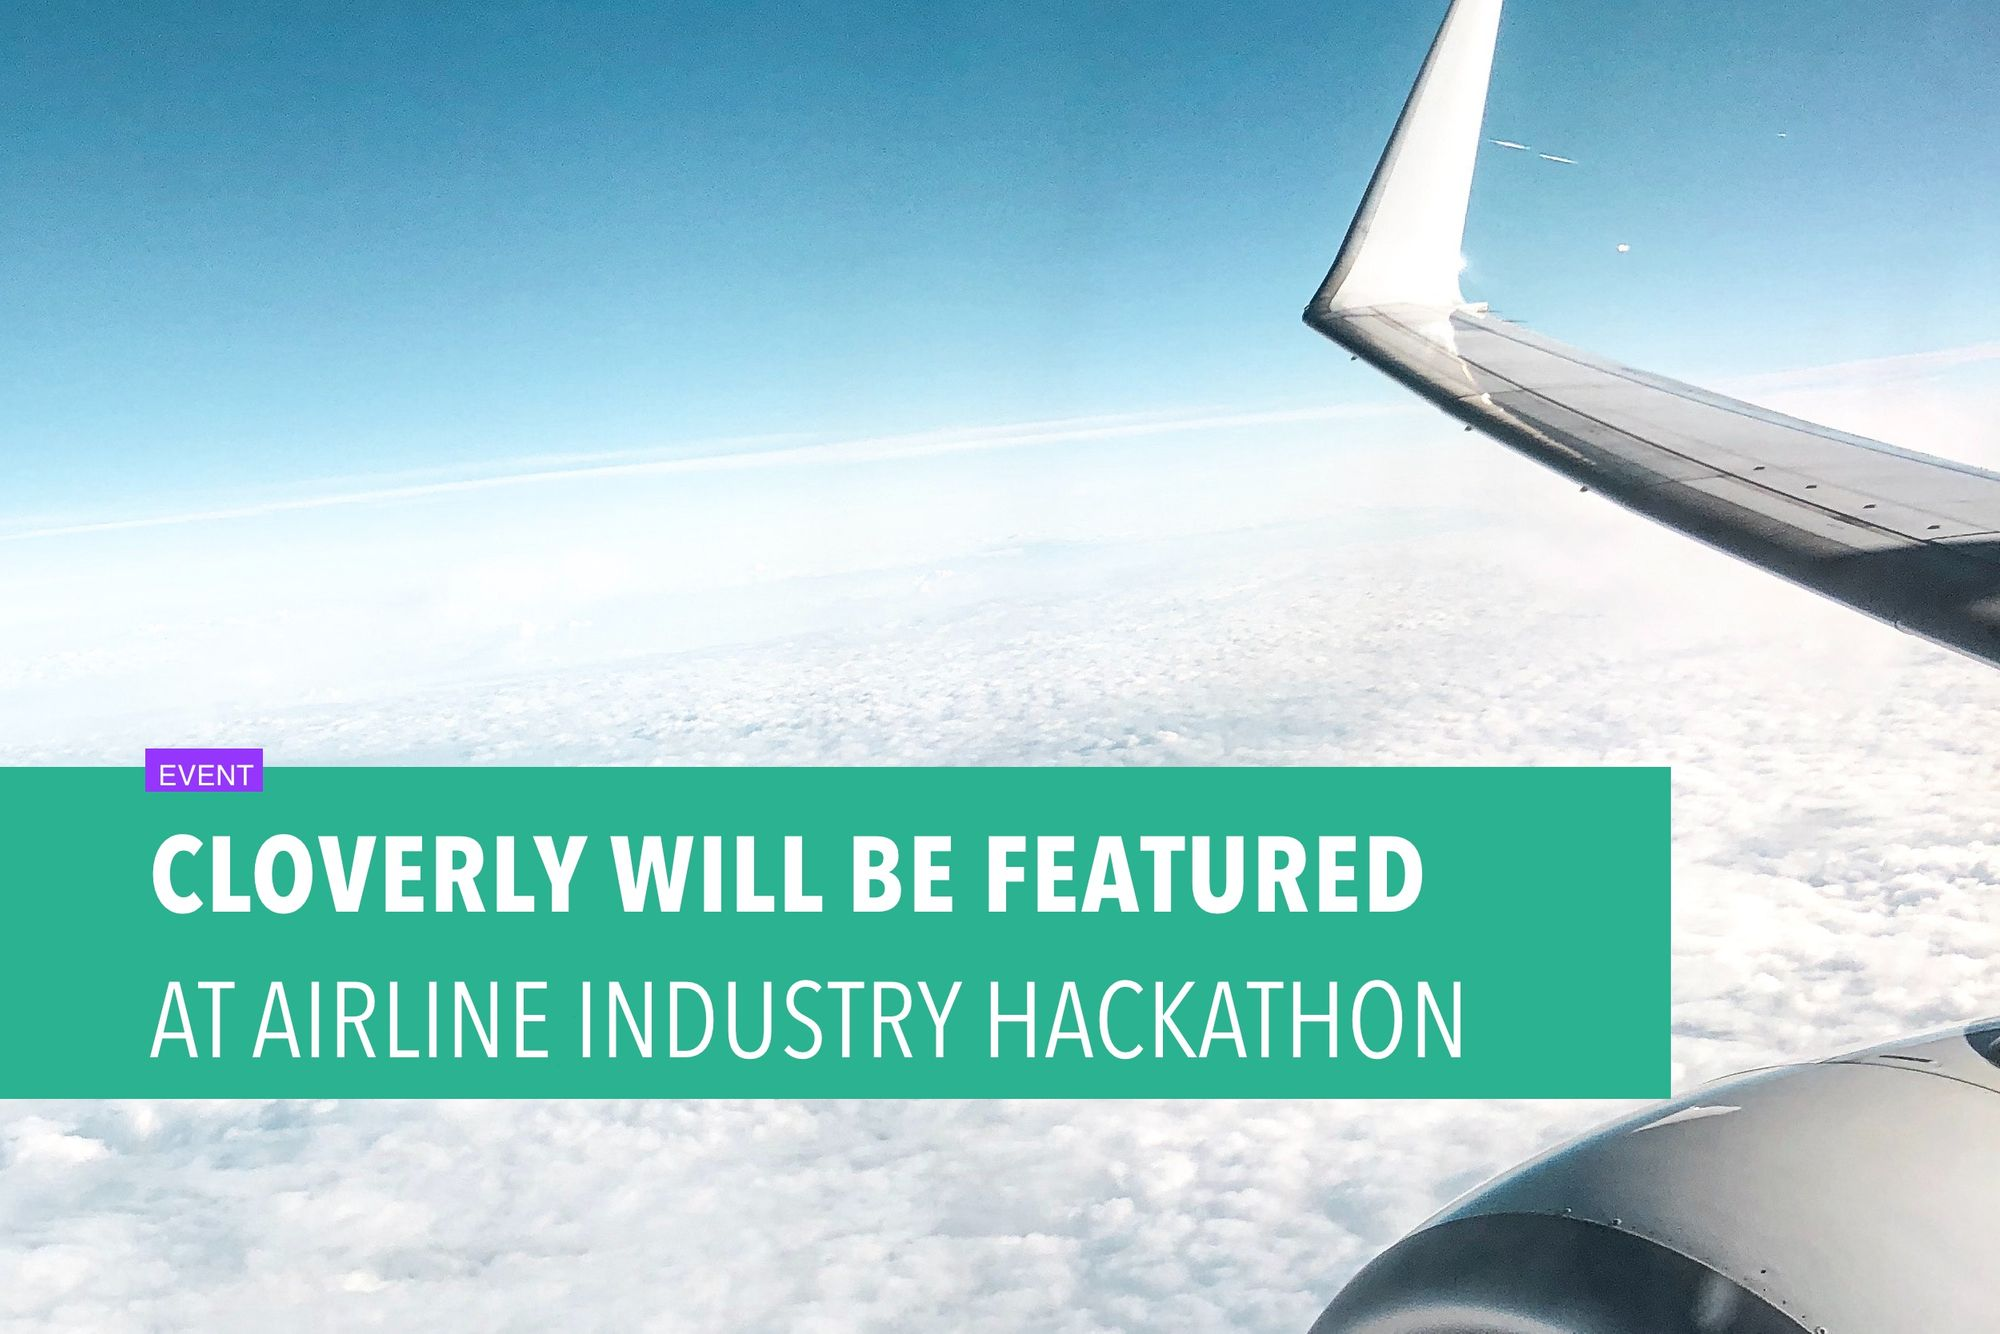 Cloverly will be featured at airline industry hackathon